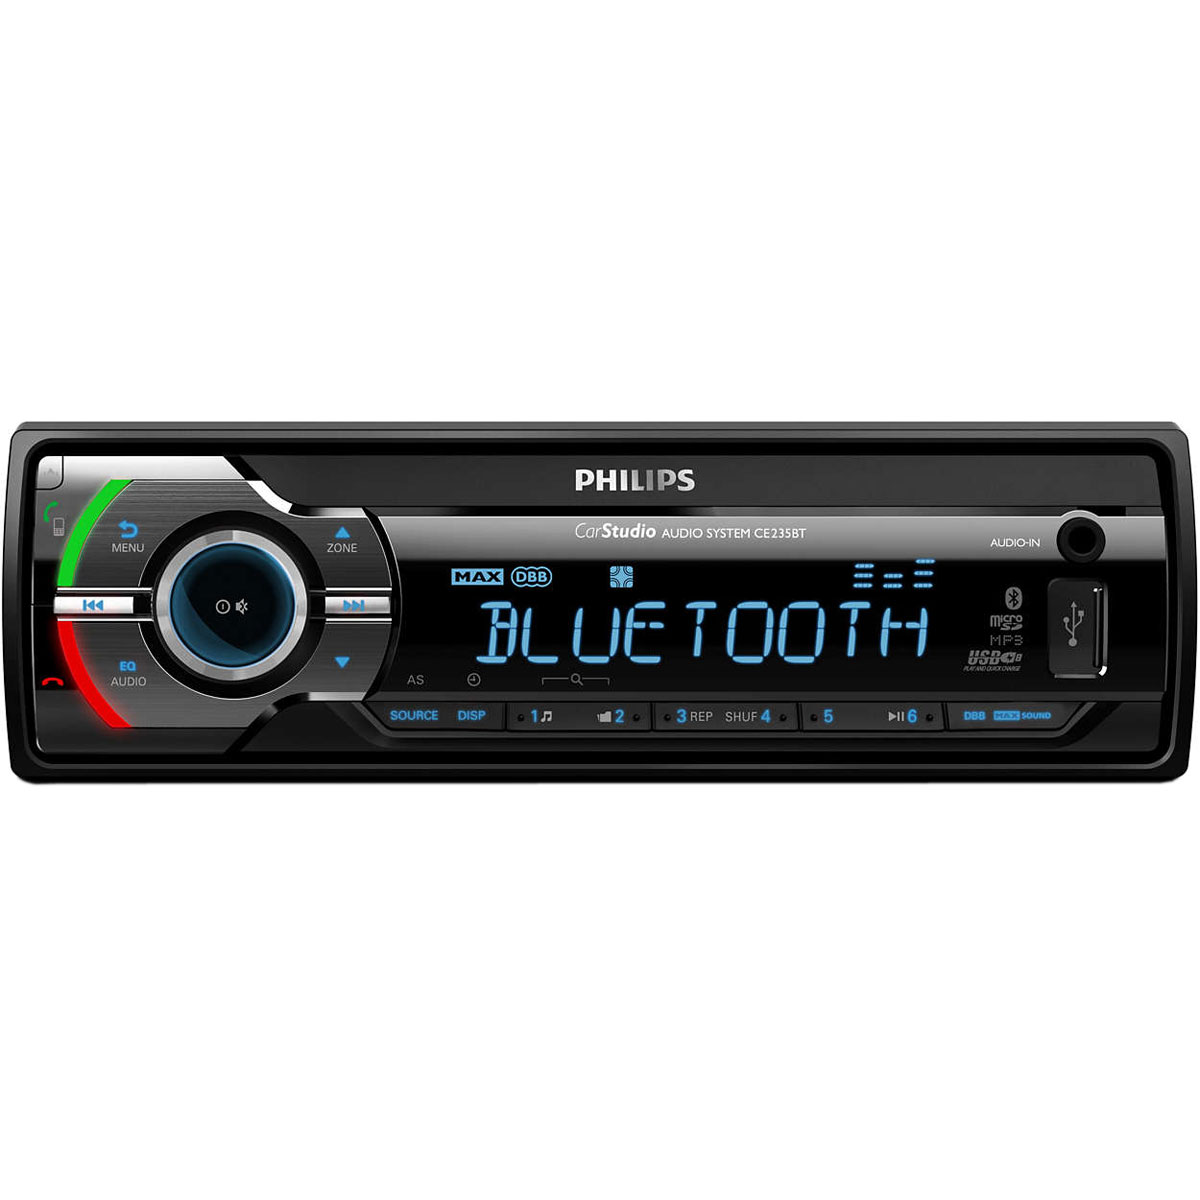 philips ce235bt autoradio philips sur. Black Bedroom Furniture Sets. Home Design Ideas